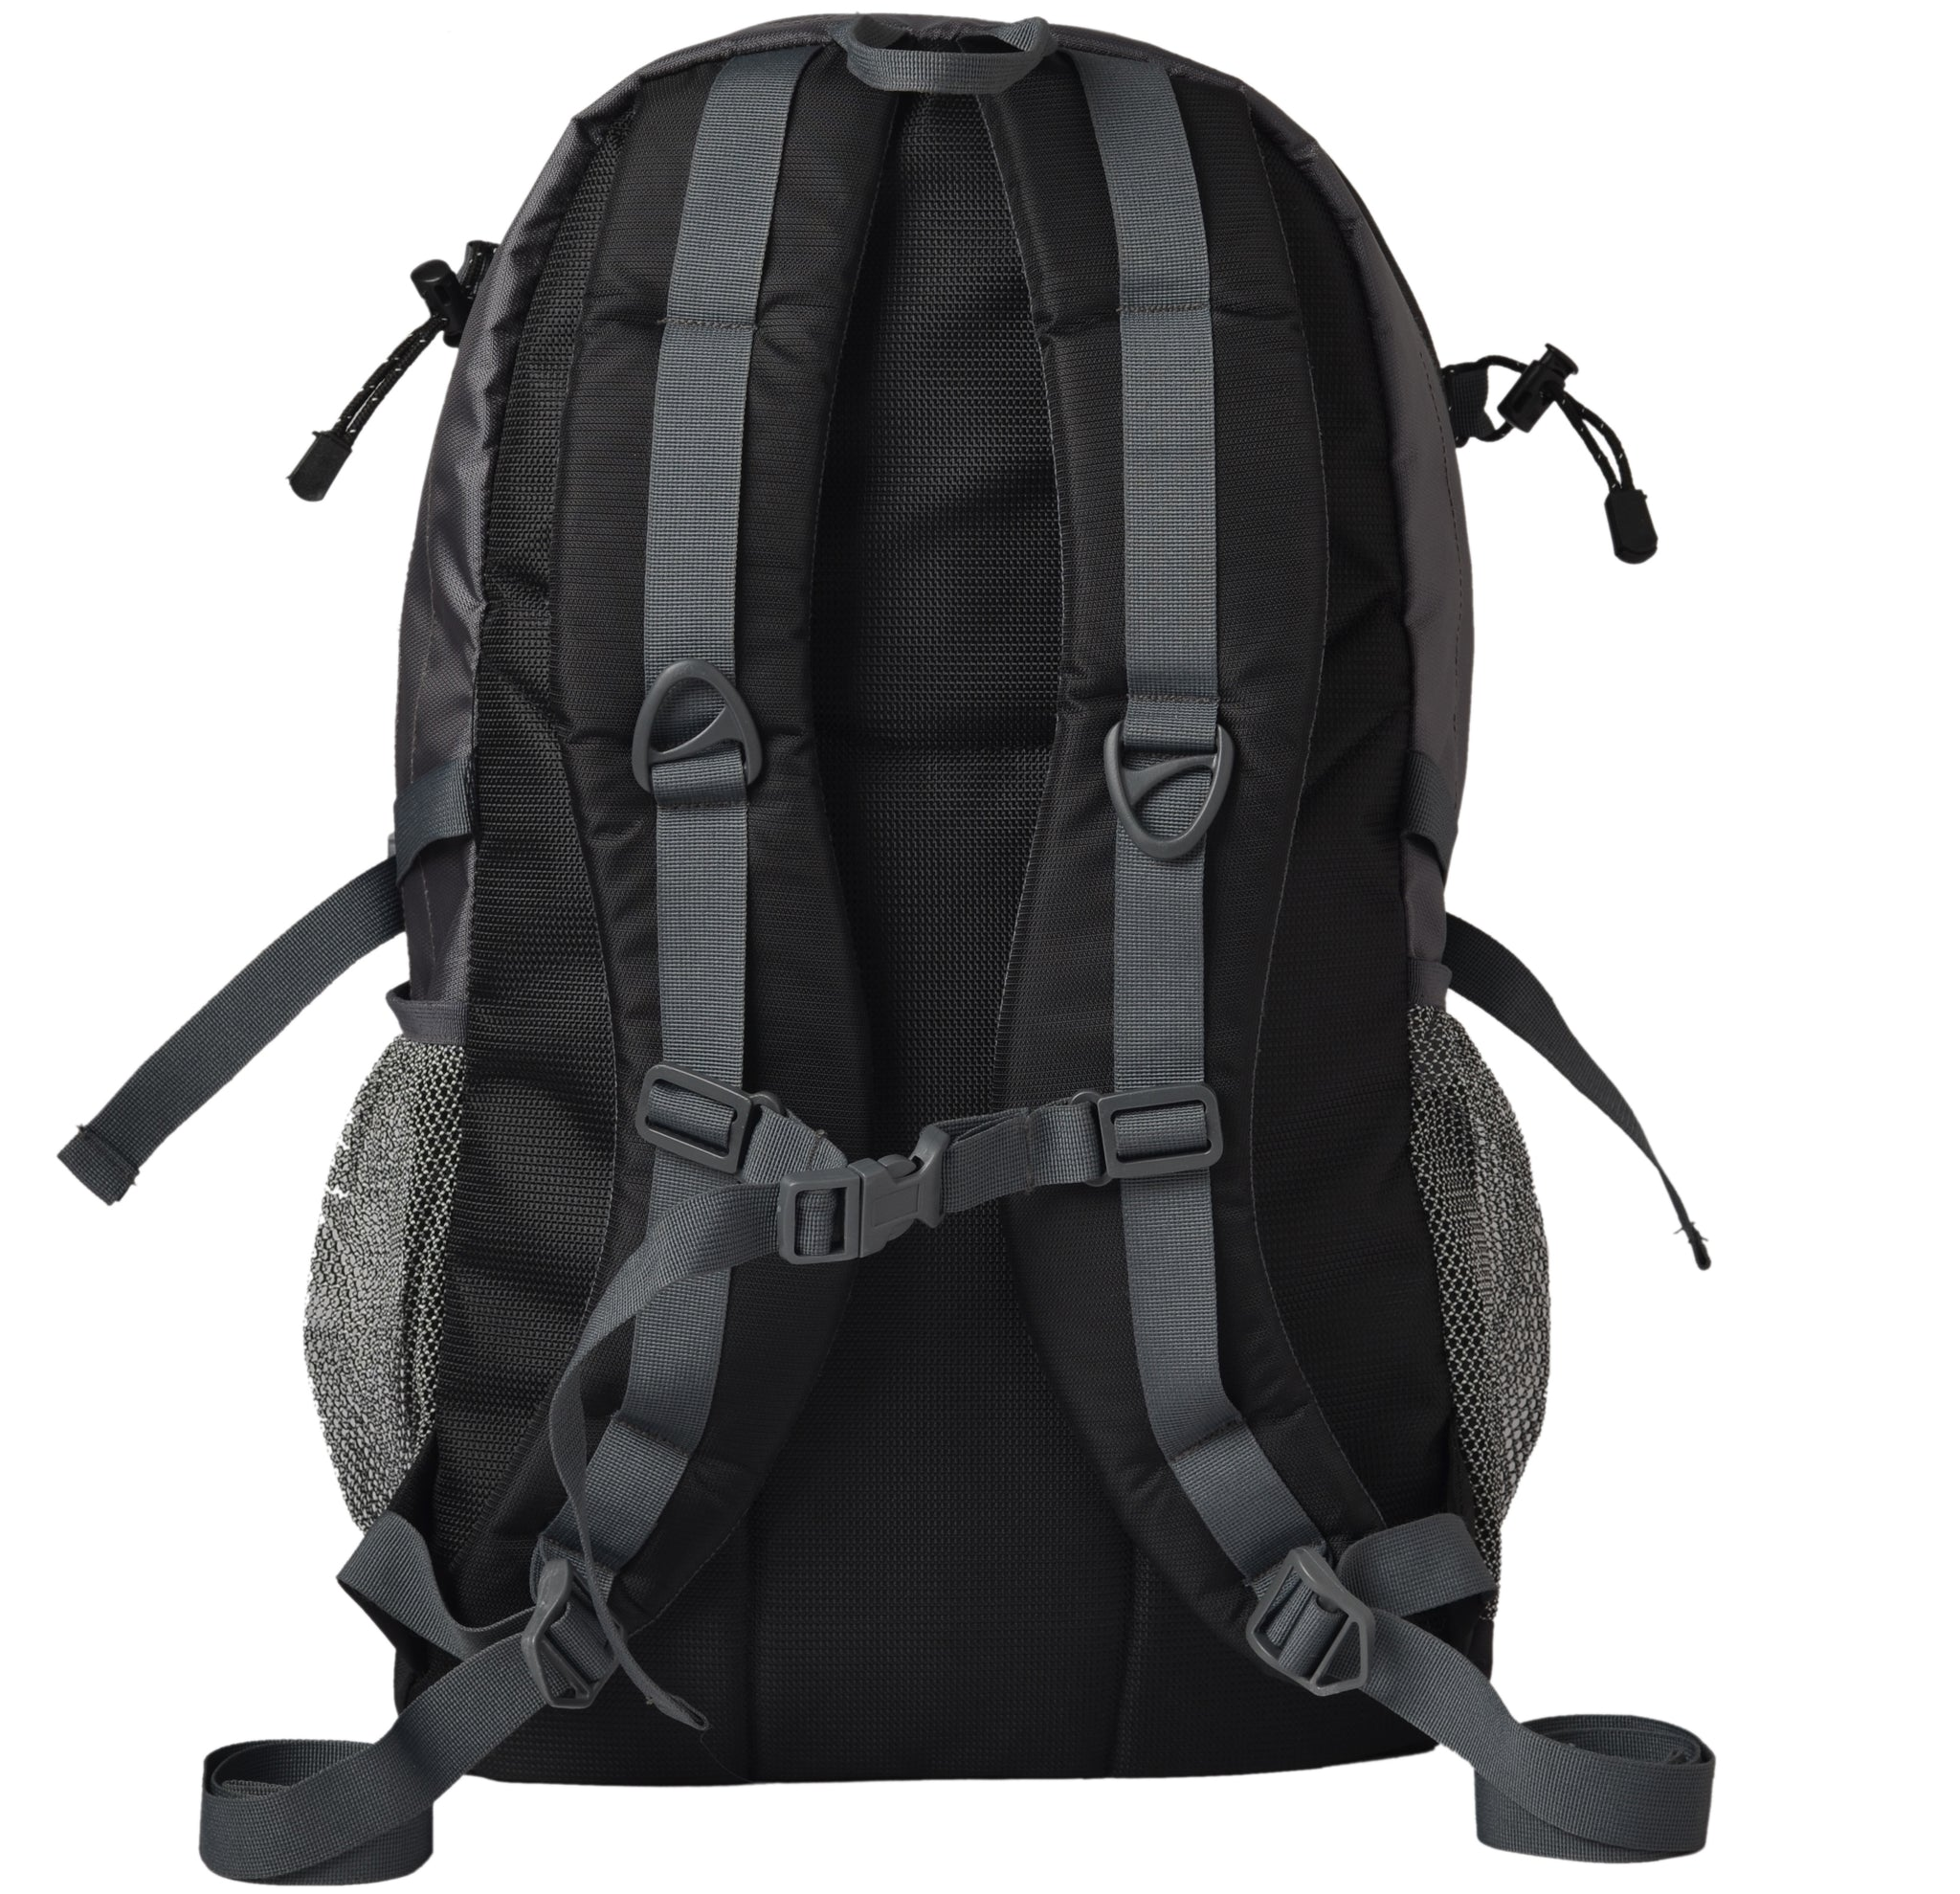 F Gear Fortune 27 Liters Laptop Backpack (Black, Grey)